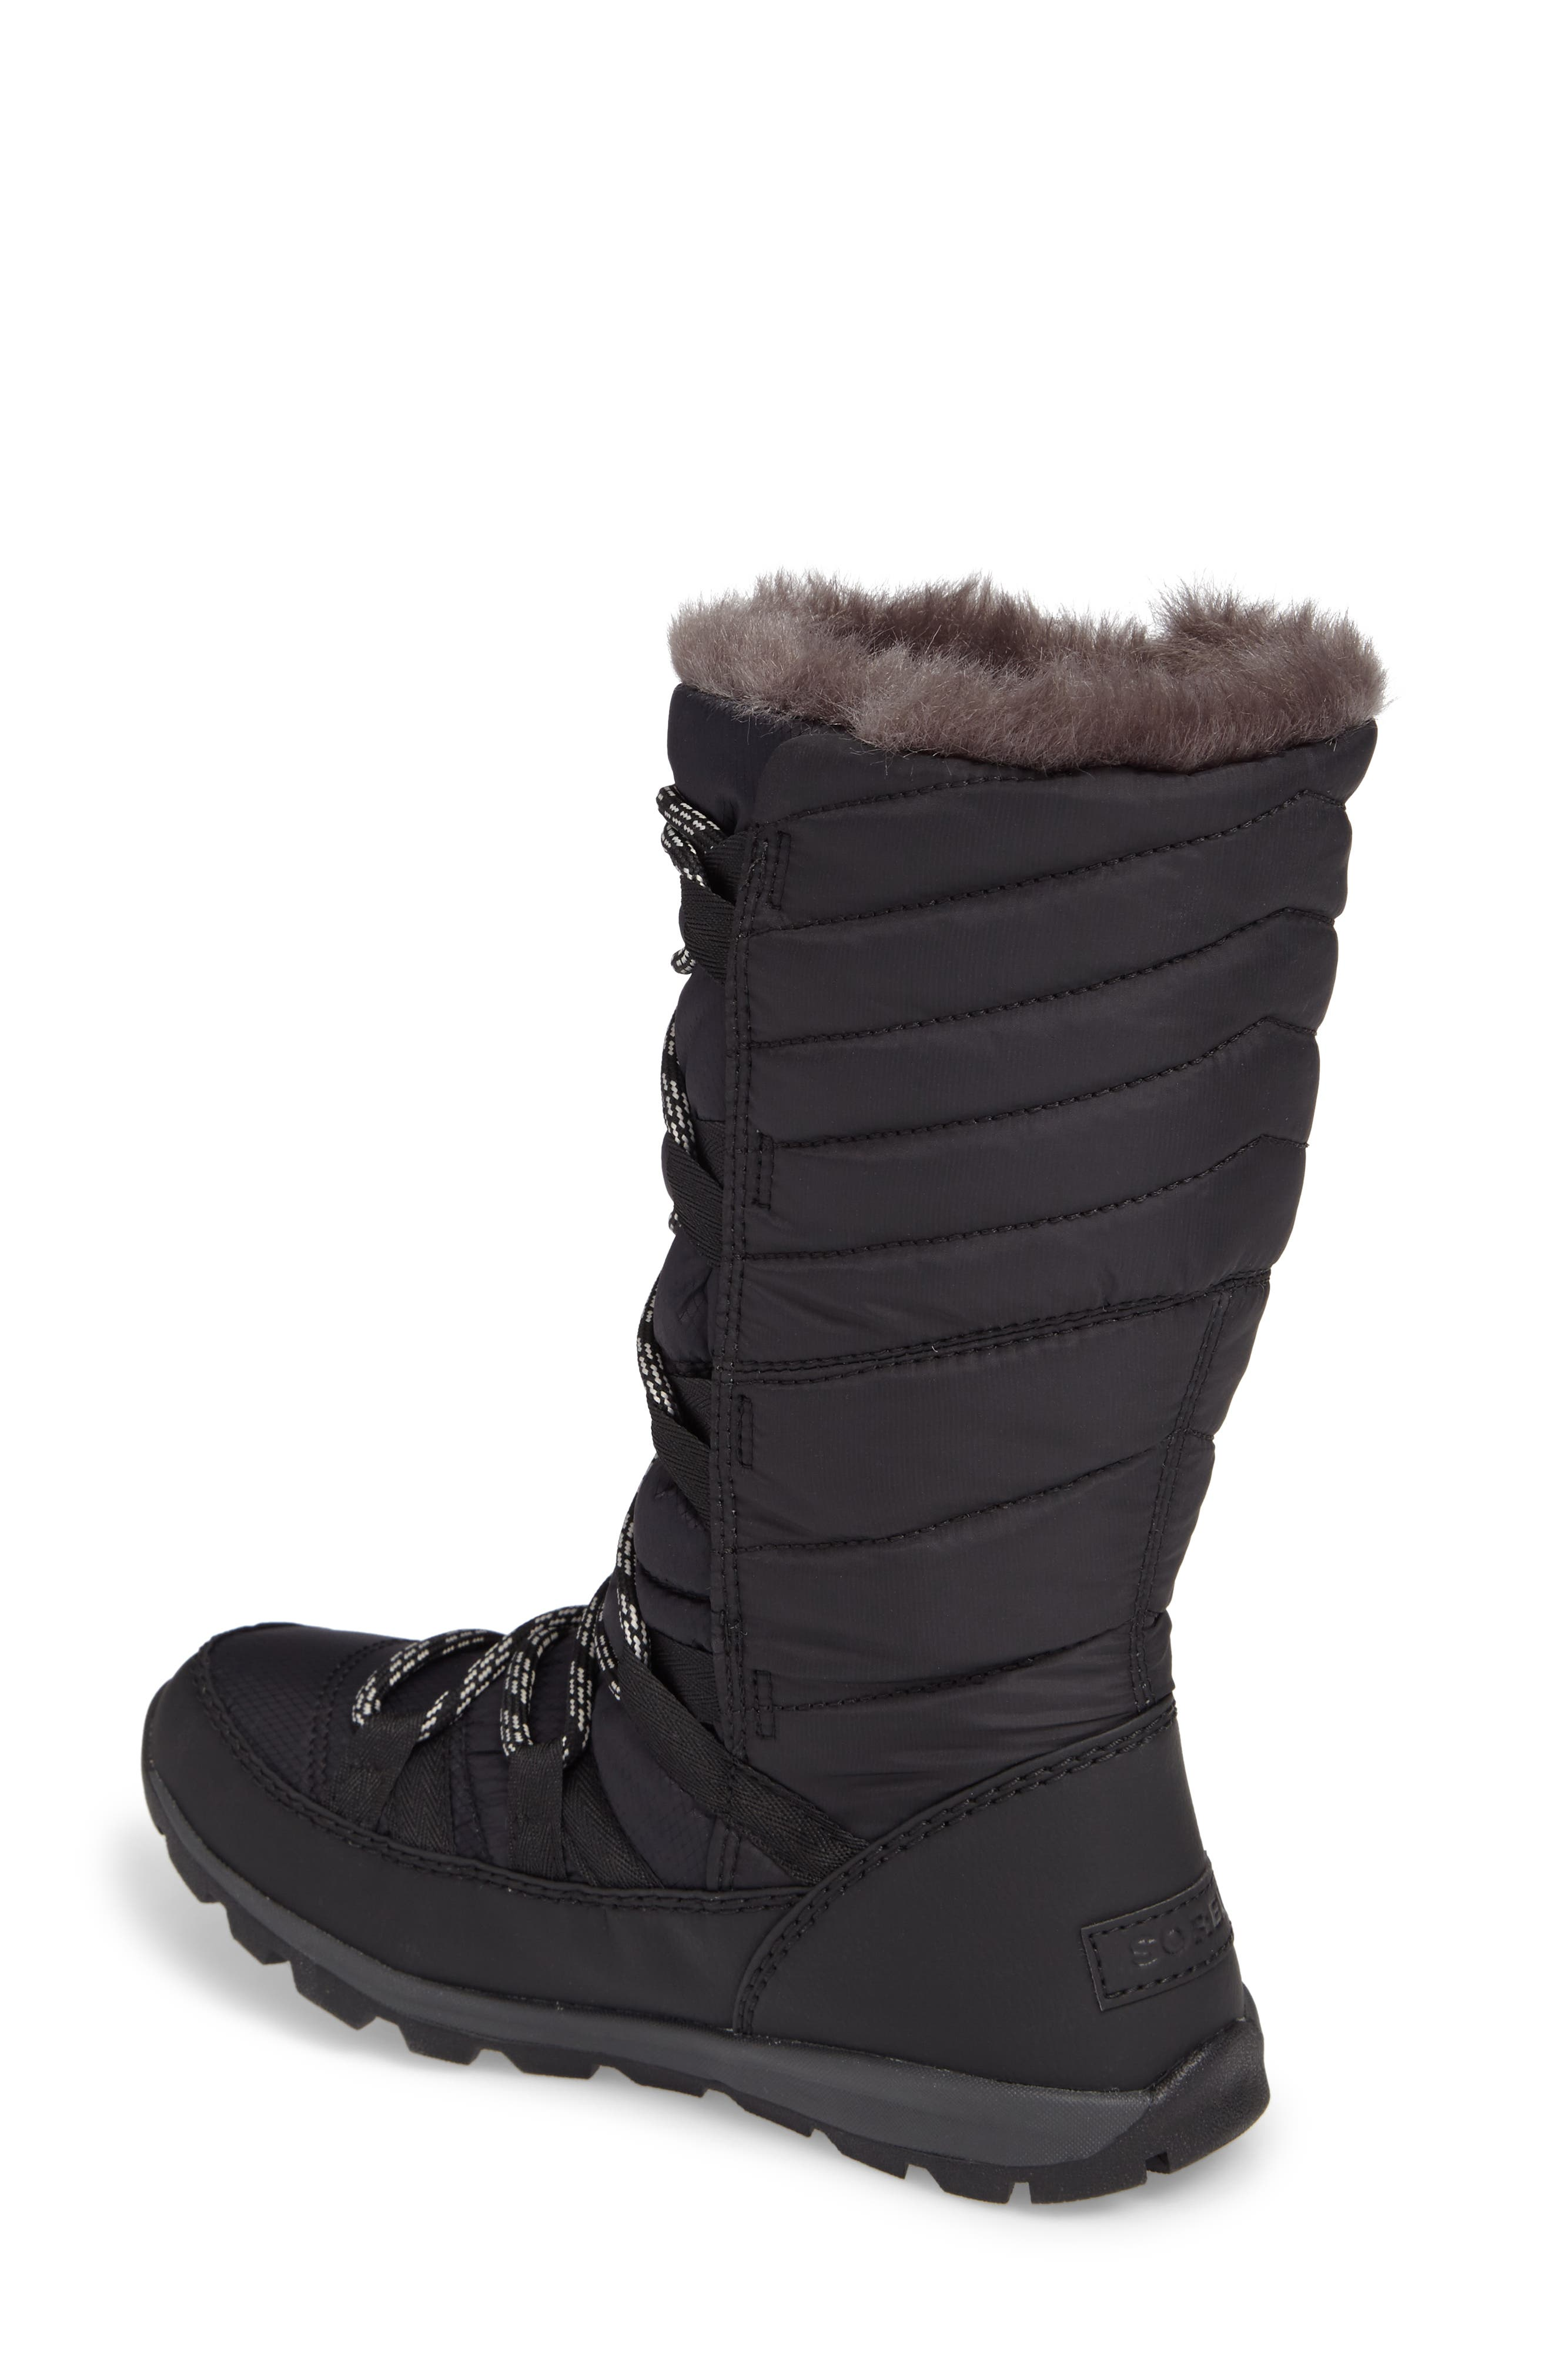 Whitney Snow Boot,                             Alternate thumbnail 3, color,